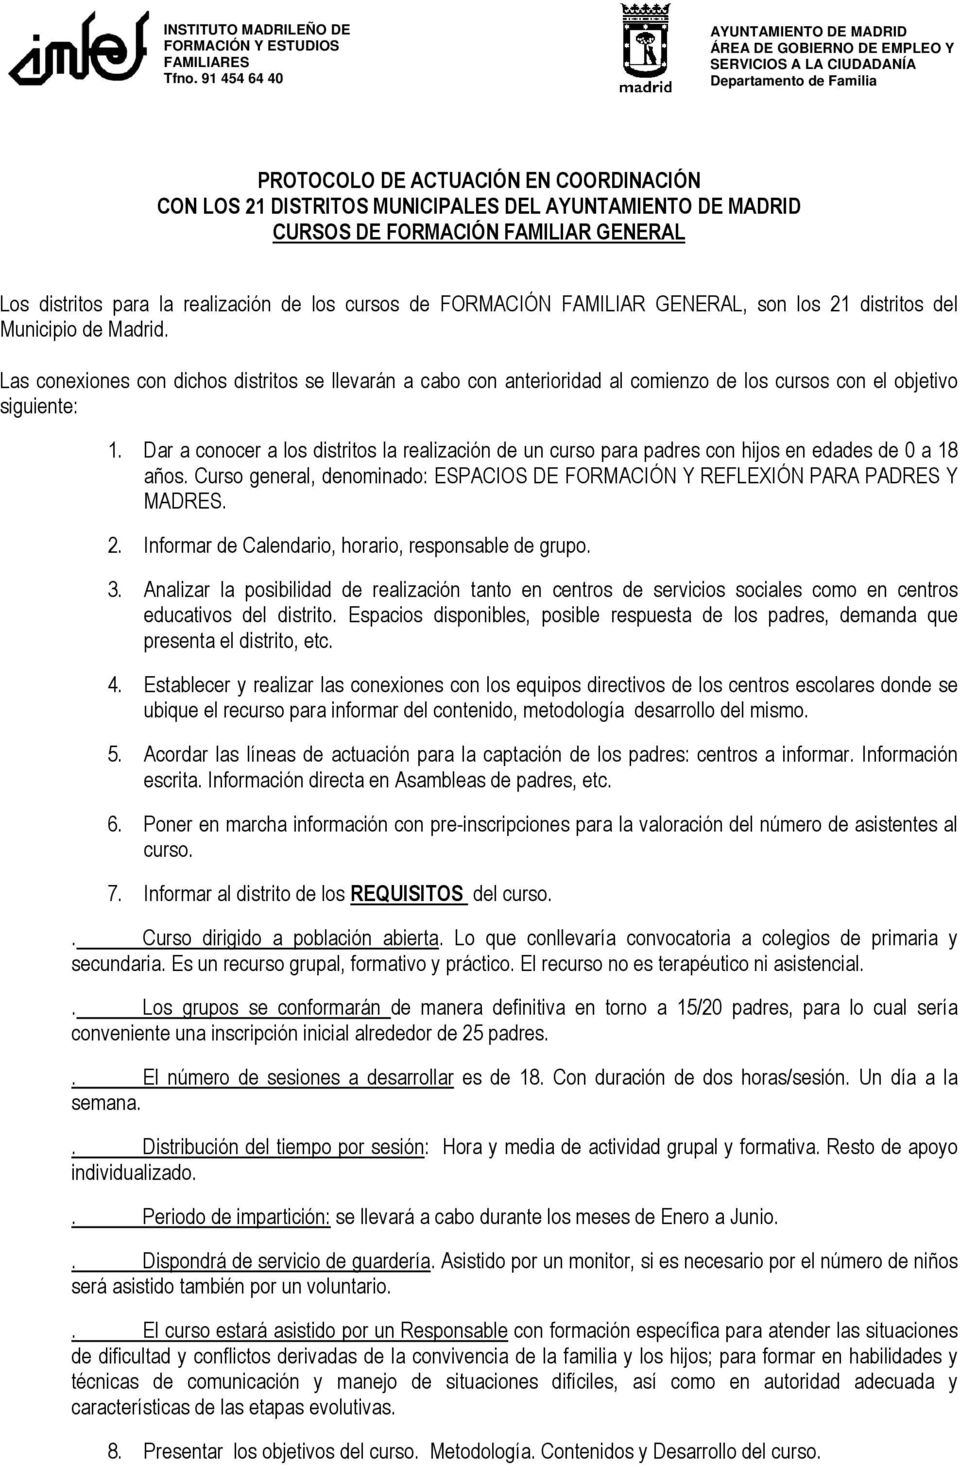 AYUNTAMIENTO DE MADRID CURSOS DE FORMACIÓN FAMILIAR GENERAL Los distritos para la realización de los cursos de FORMACIÓN FAMILIAR GENERAL, son los 21 distritos del Municipio de Madrid.